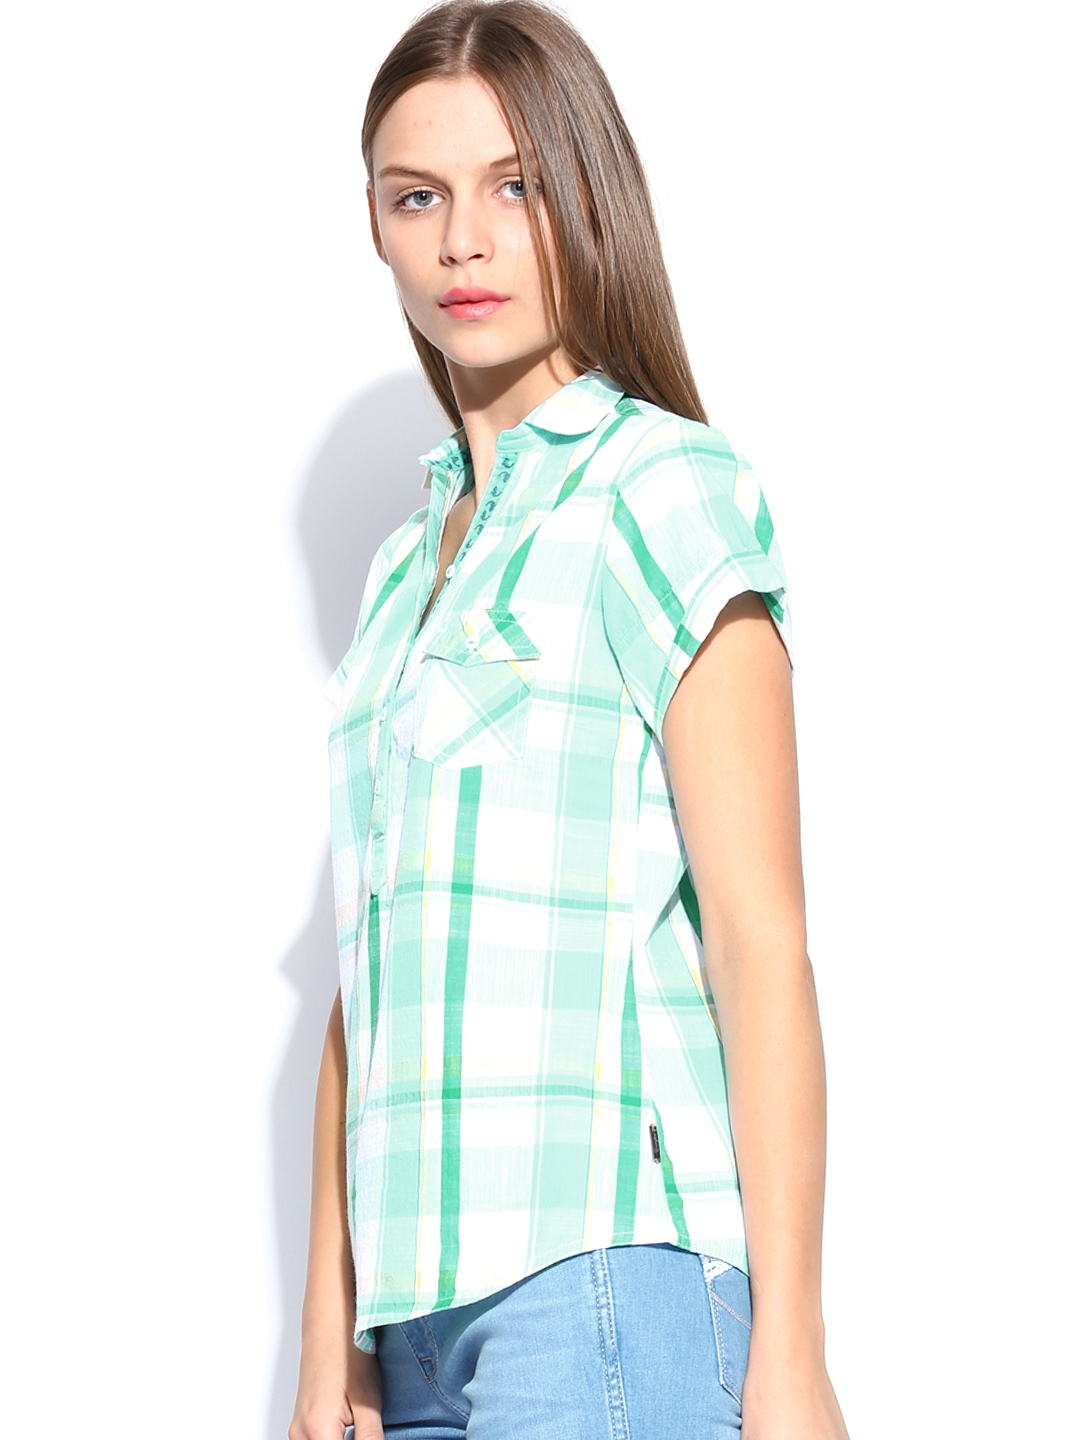 Myntra wrangler women green white checked shirt 726989 for Womens green checked shirt